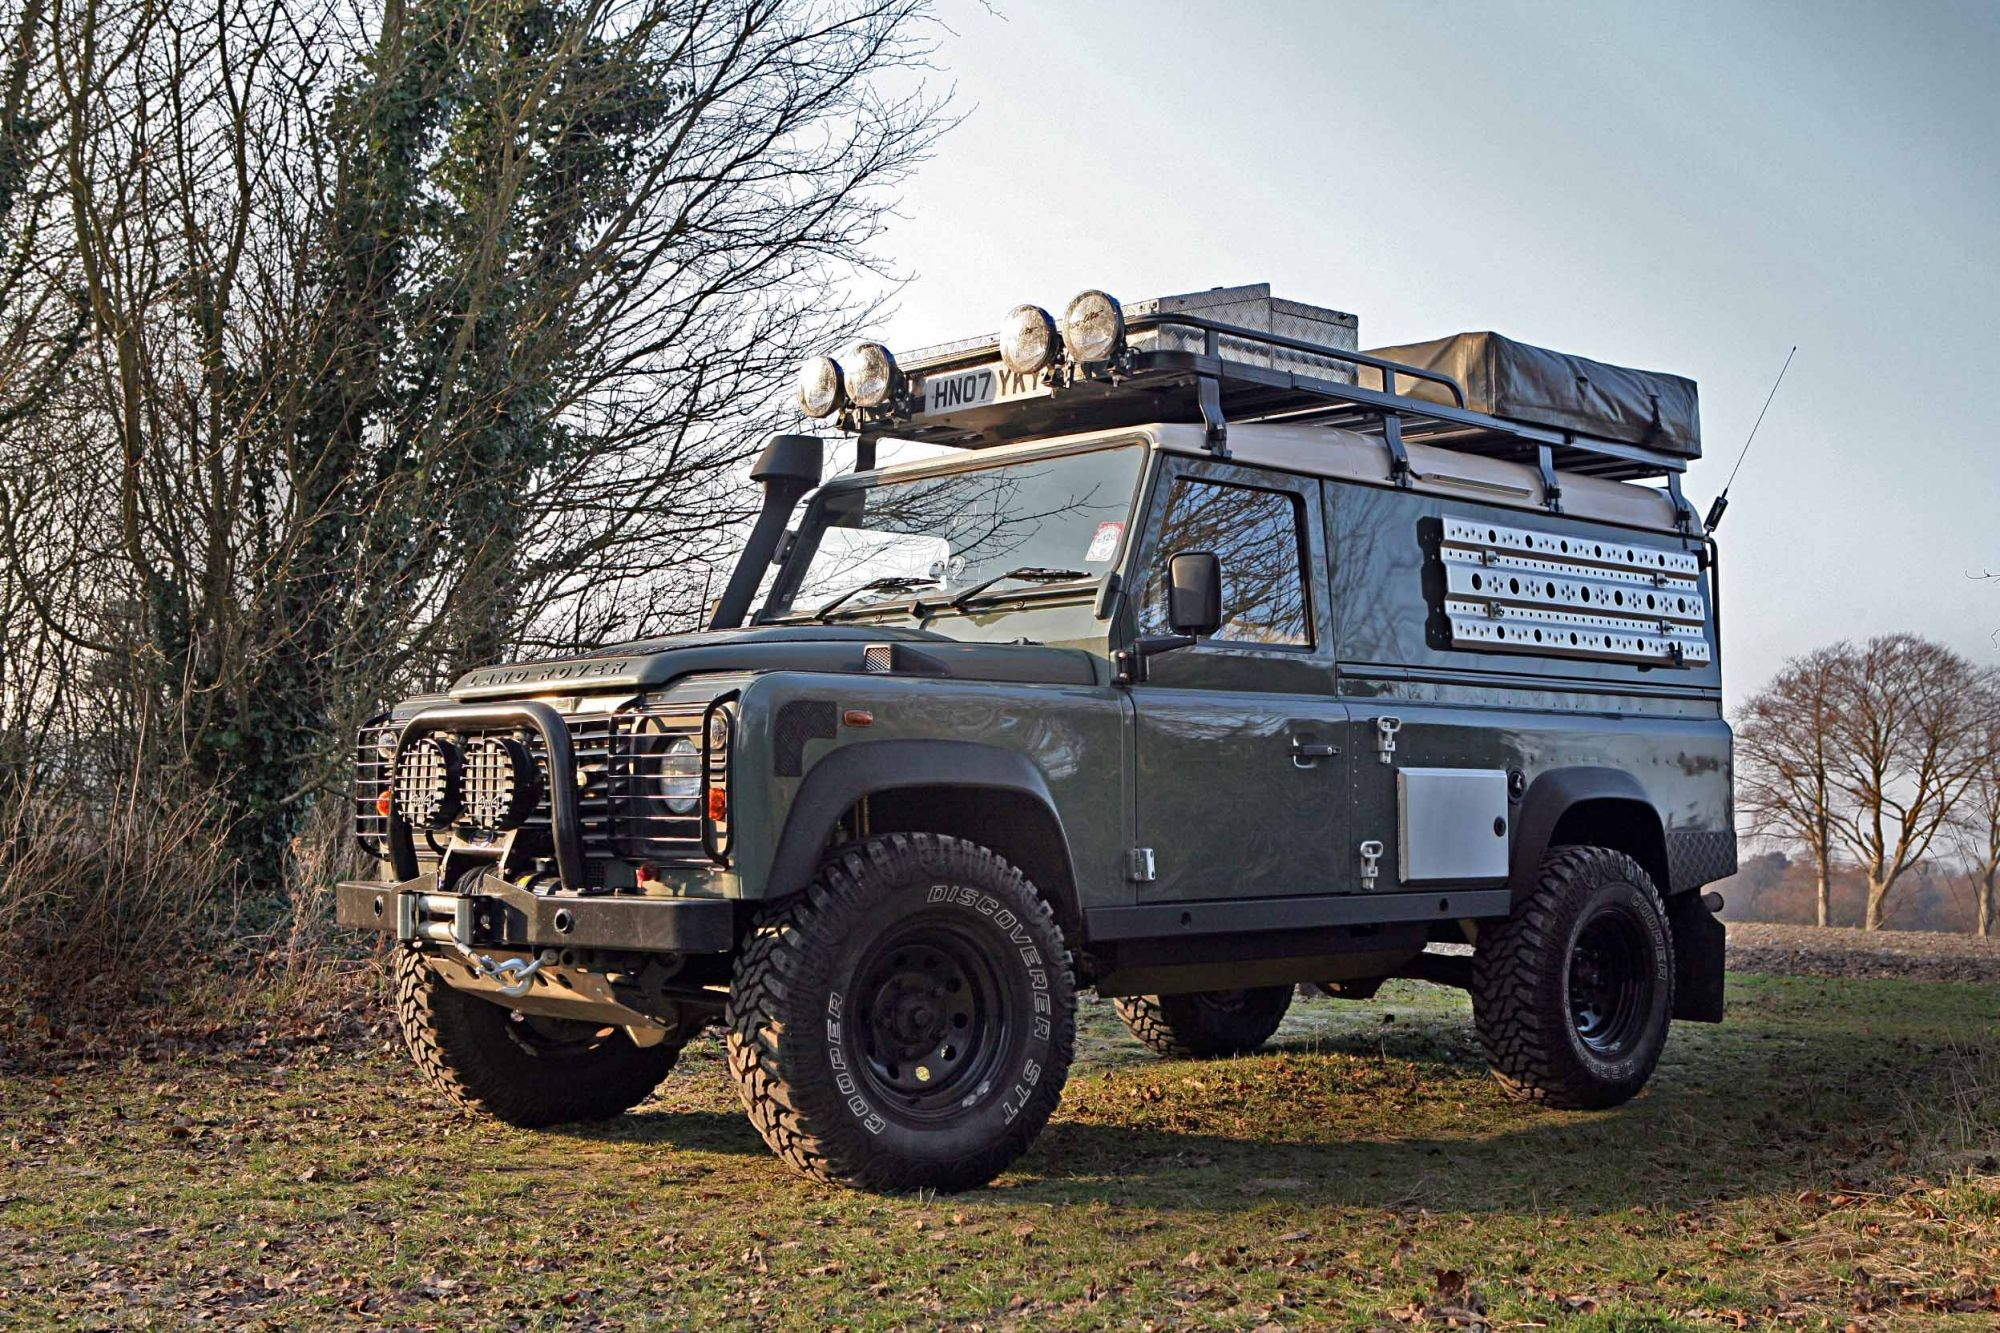 Land Rover Defender 110 Hardtop Expedition Overland This